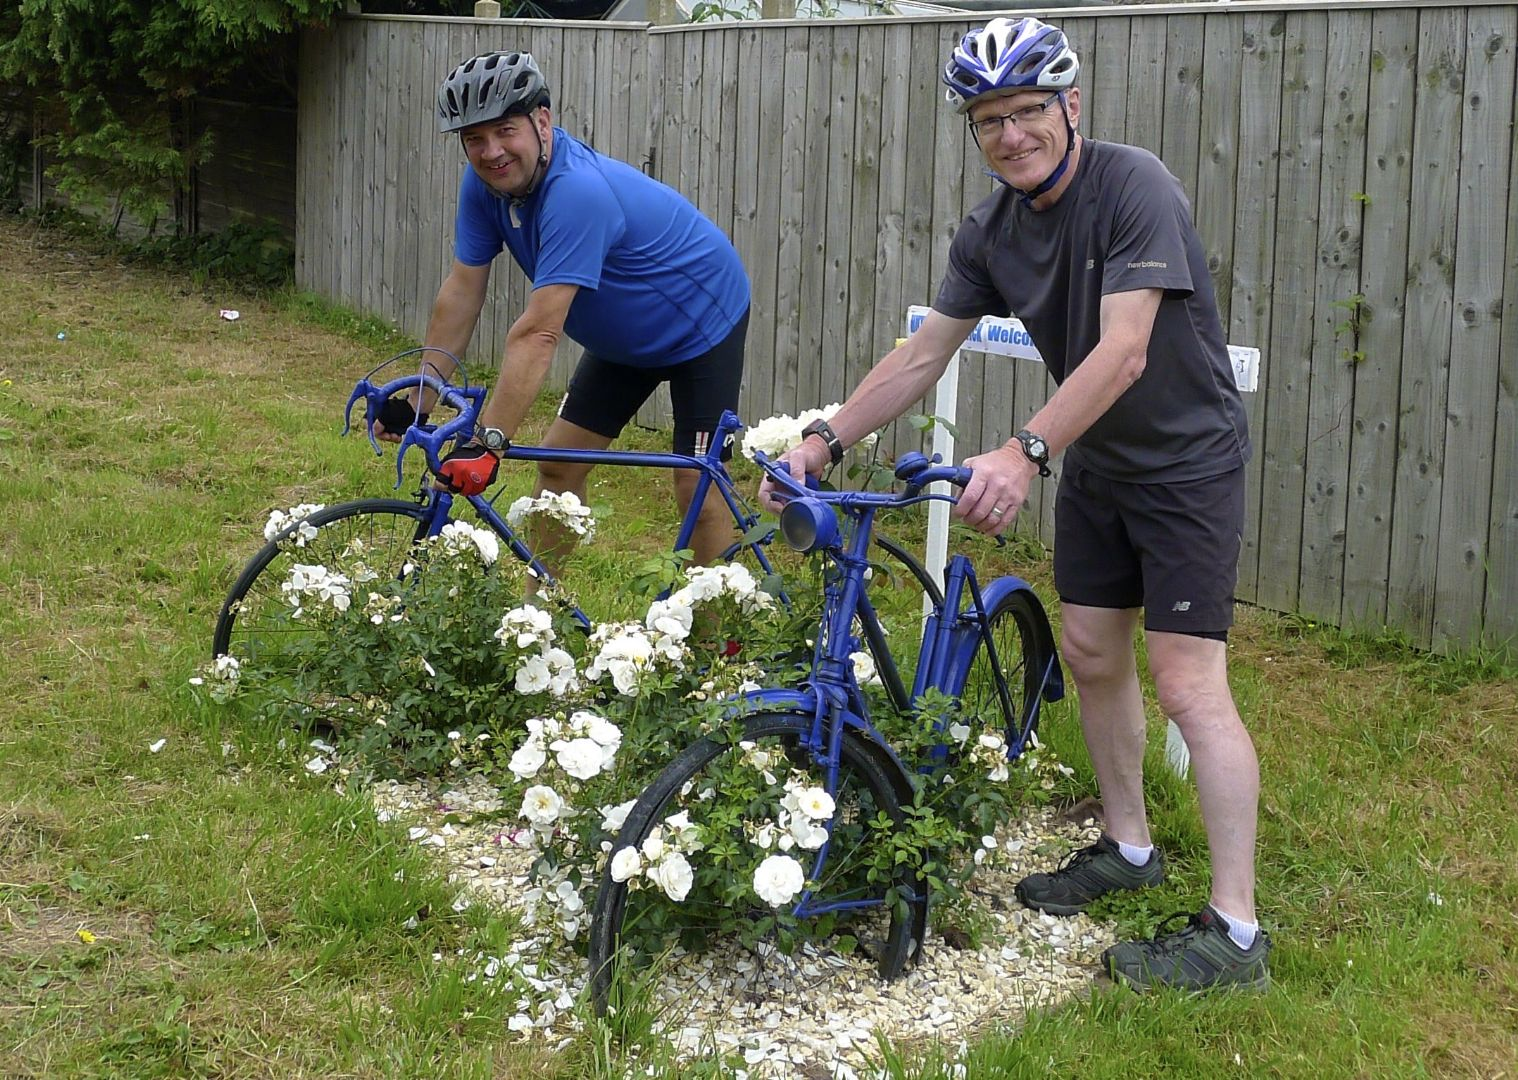 _Customer.85339.11811.jpg - UK - Way of the Roses - Supported Leisure Cycling Holiday - Leisure Cycling